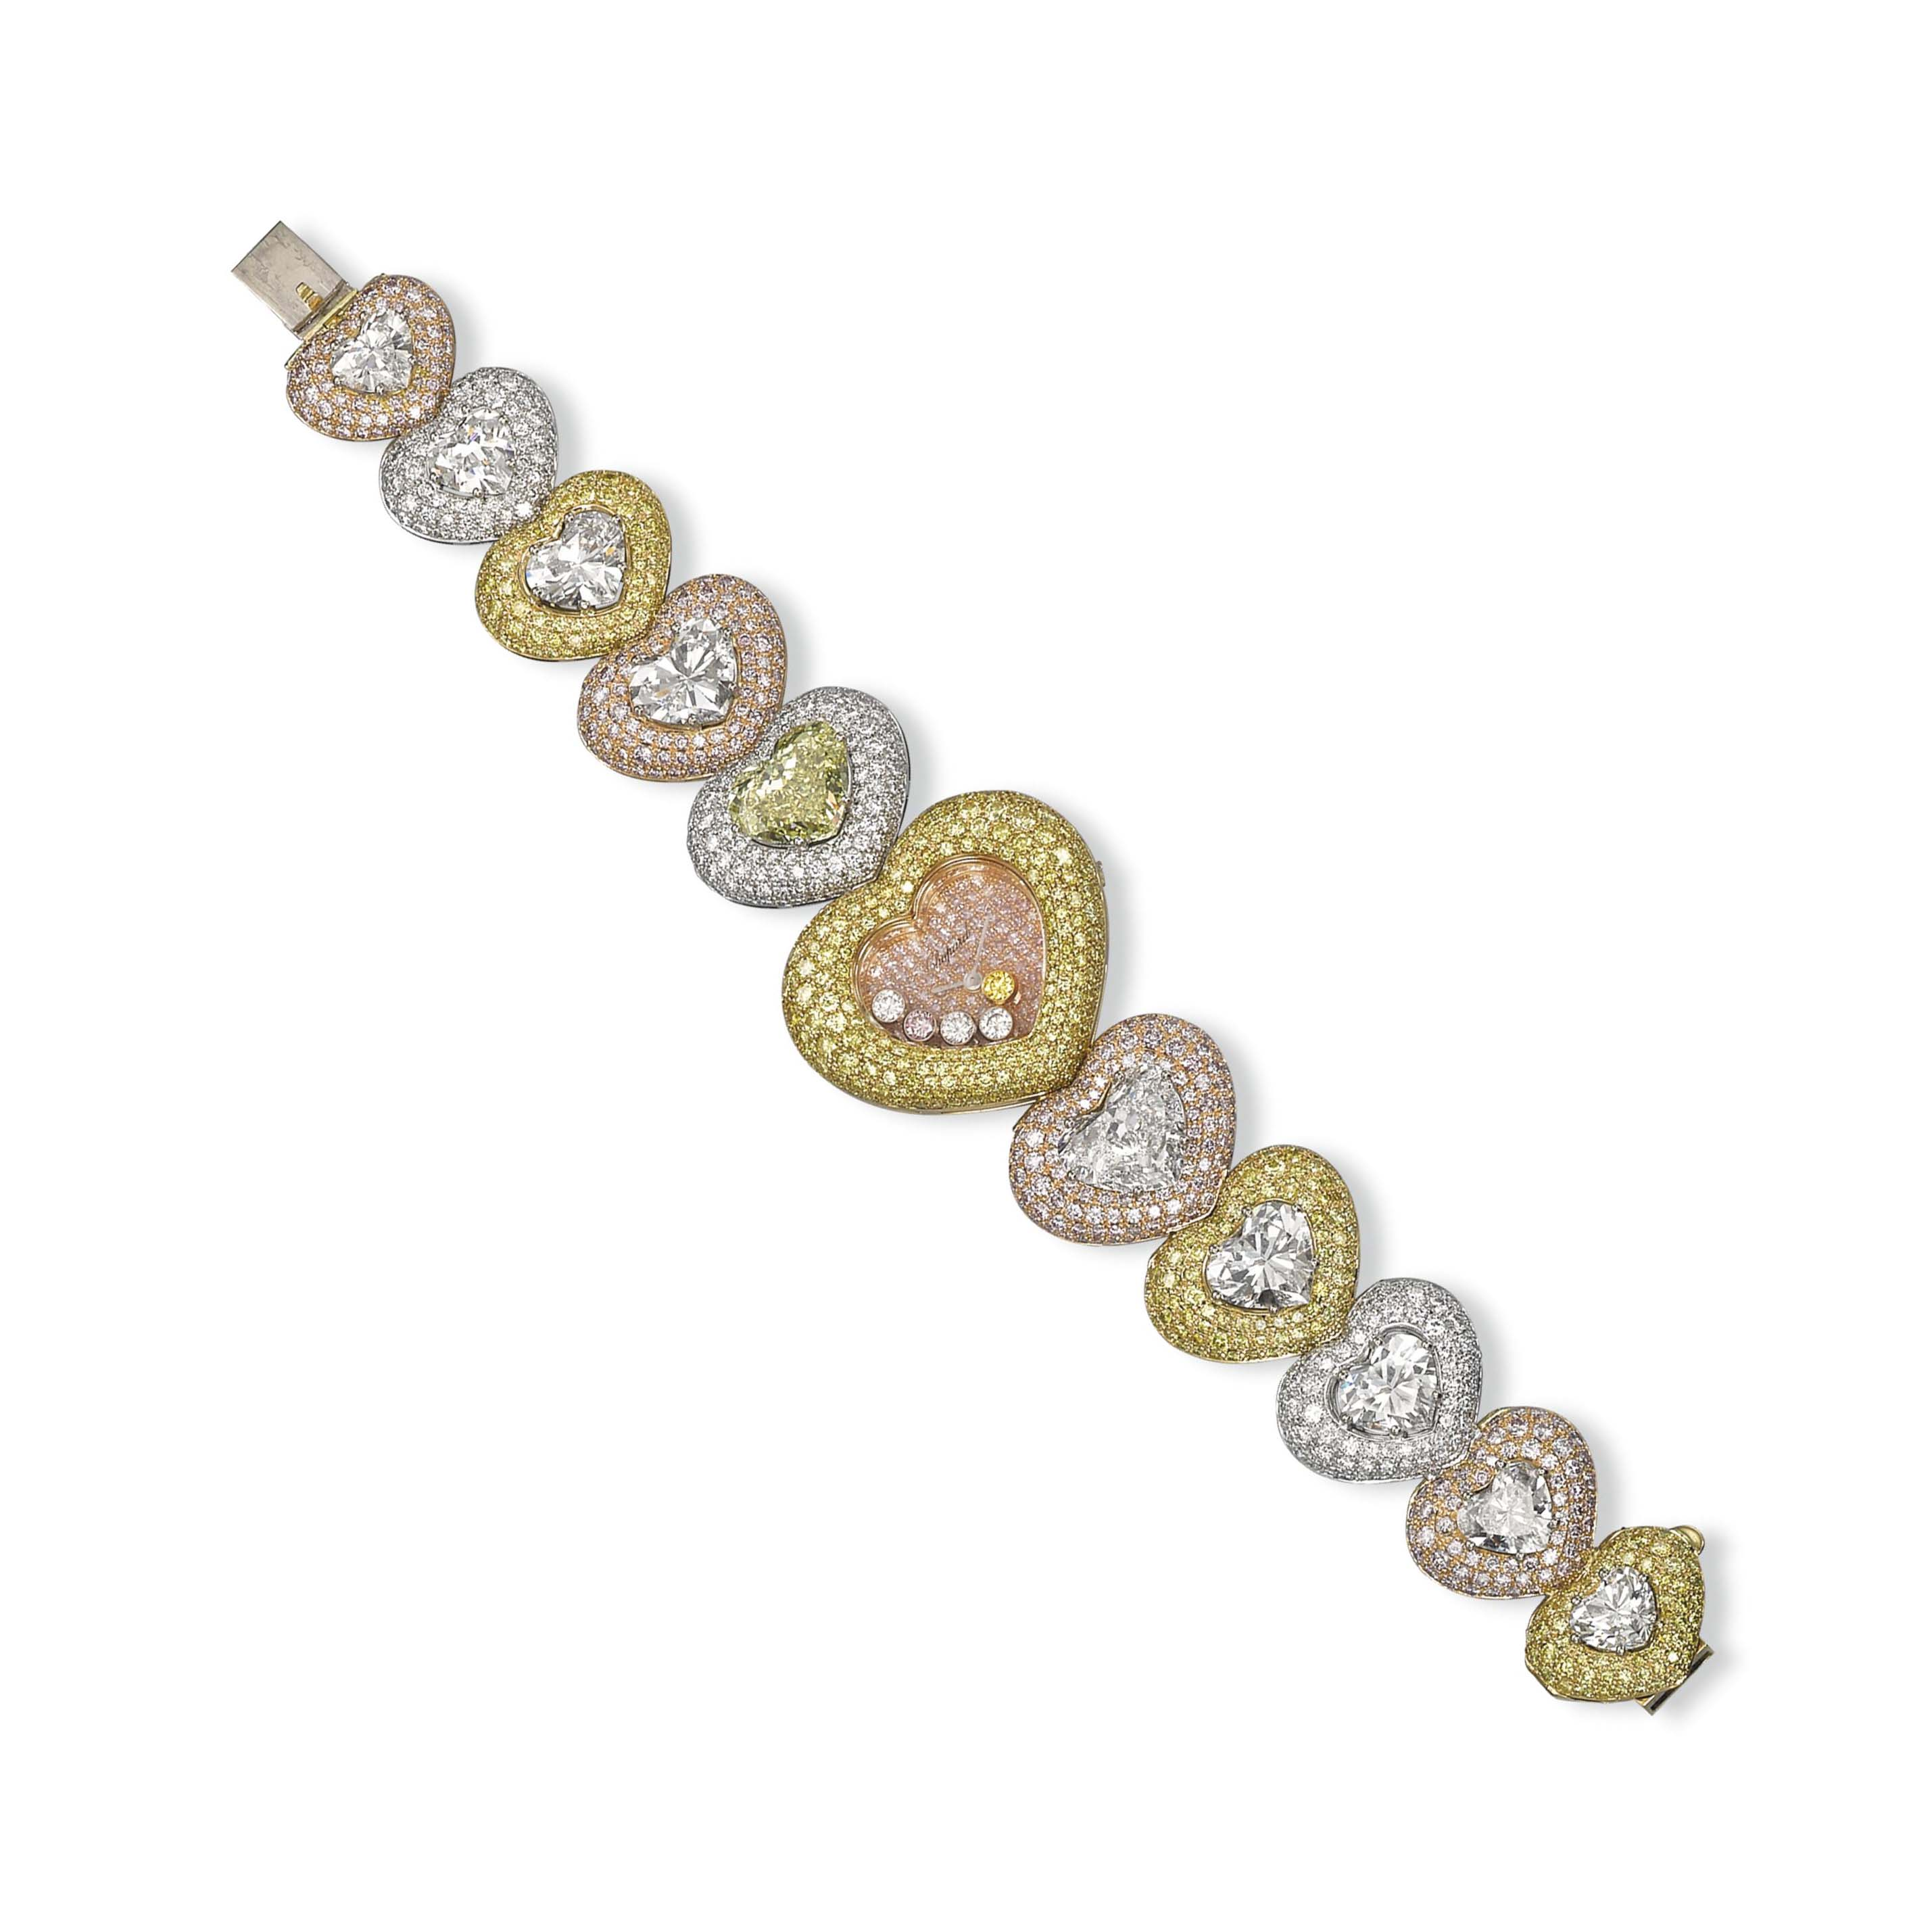 A LADY'S COLOURED DIAMOND AND DIAMOND BRACELET-WATCH, BY CHOPARD